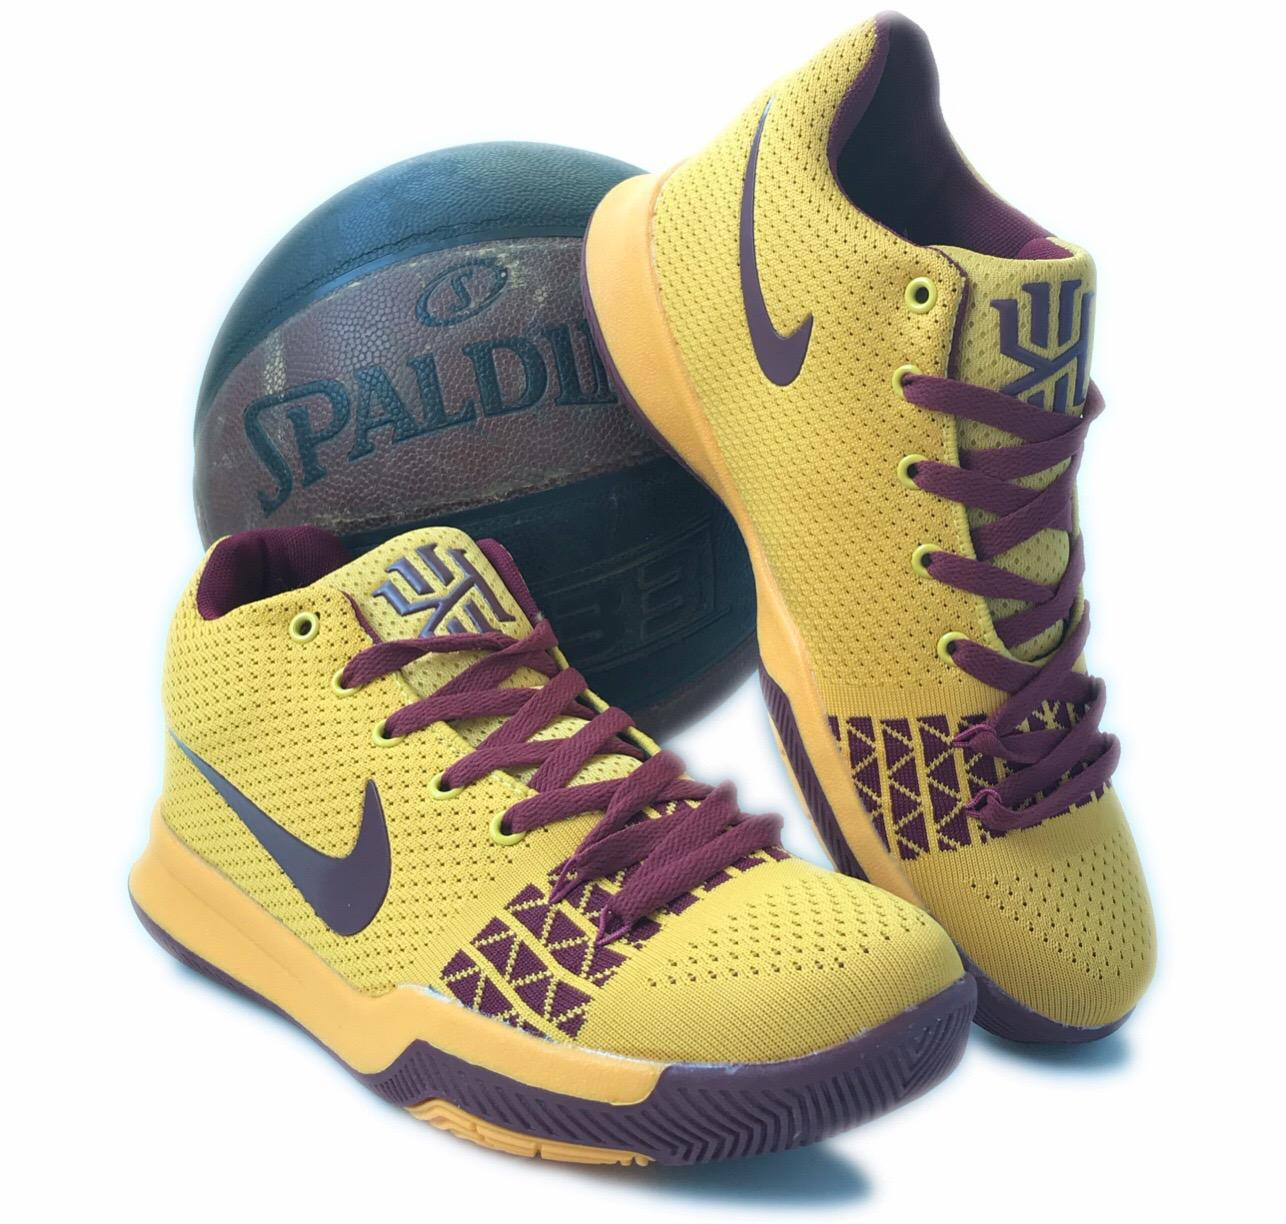 buy popular a841d 9fa53 Kyrie 3 Basketball Shoes For Men Kyrie Irving 3